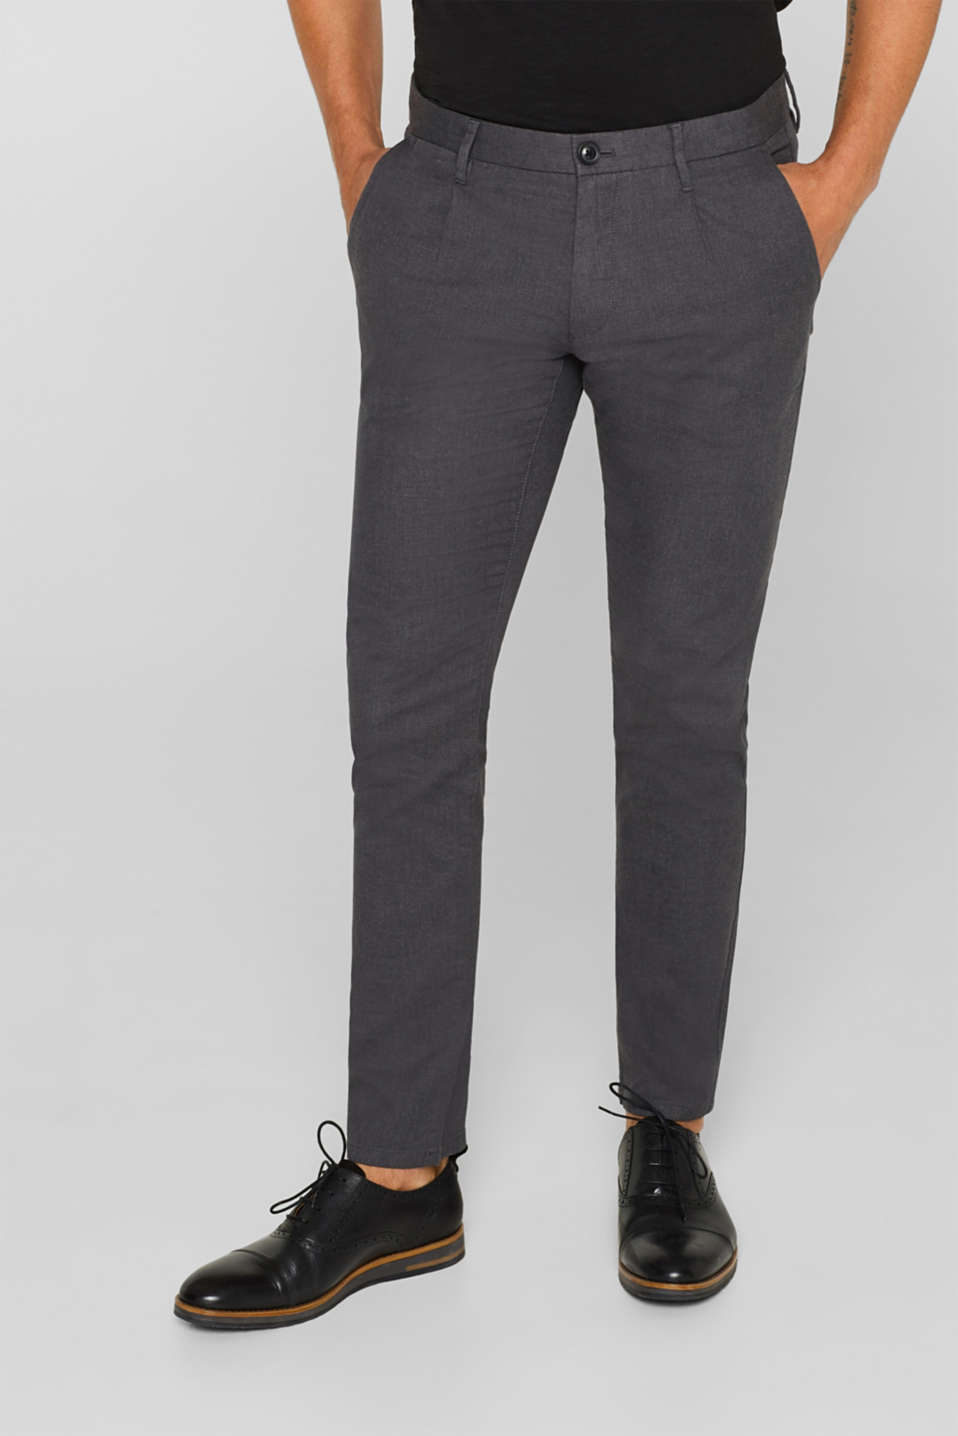 Pants woven Slim fit, ANTHRACITE, detail image number 4